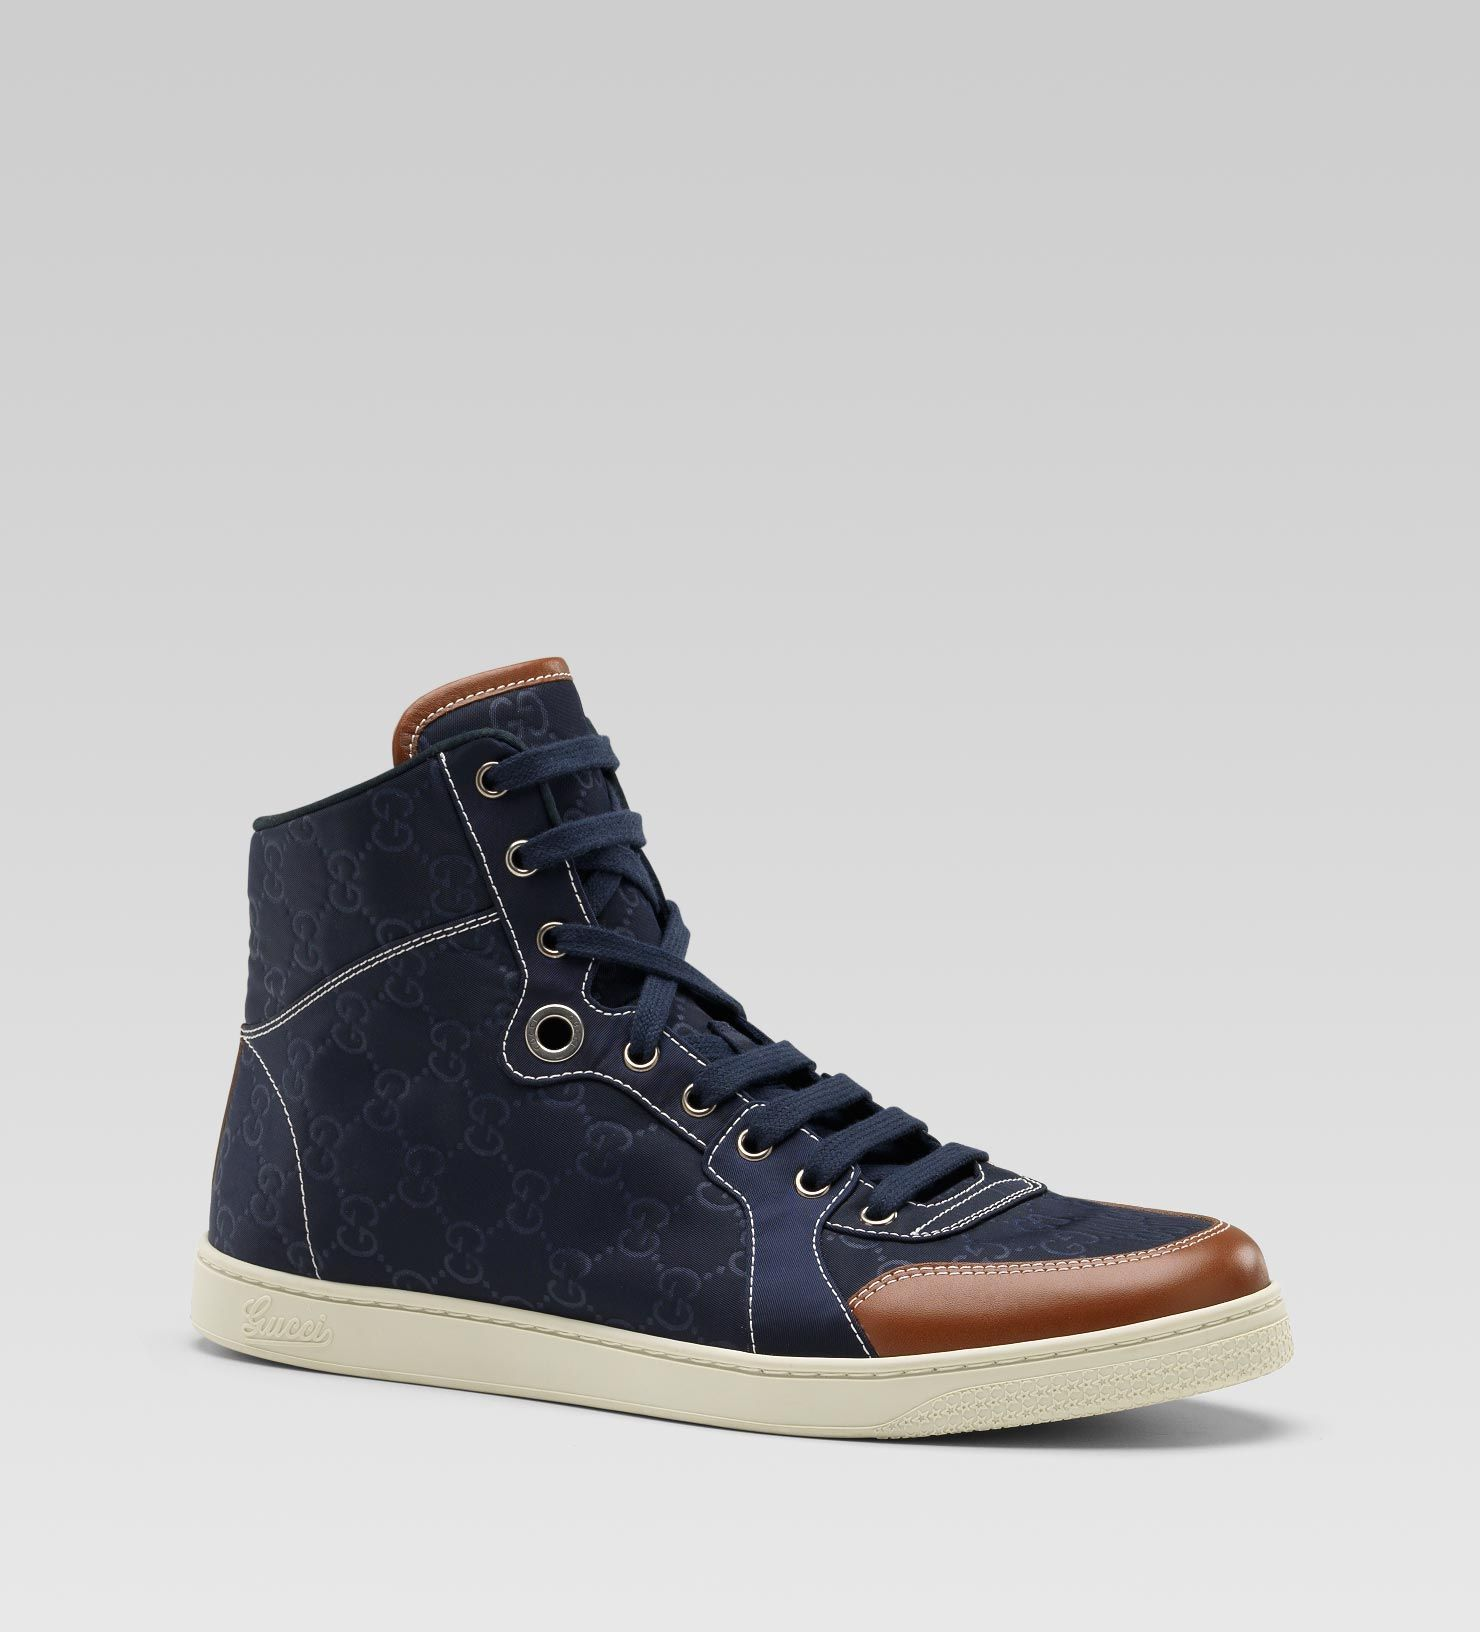 black gucci shoes for men high tops. gucci sneakers   men hi-top sneaker blue nylon guccissima cabinet black shoes for high tops e